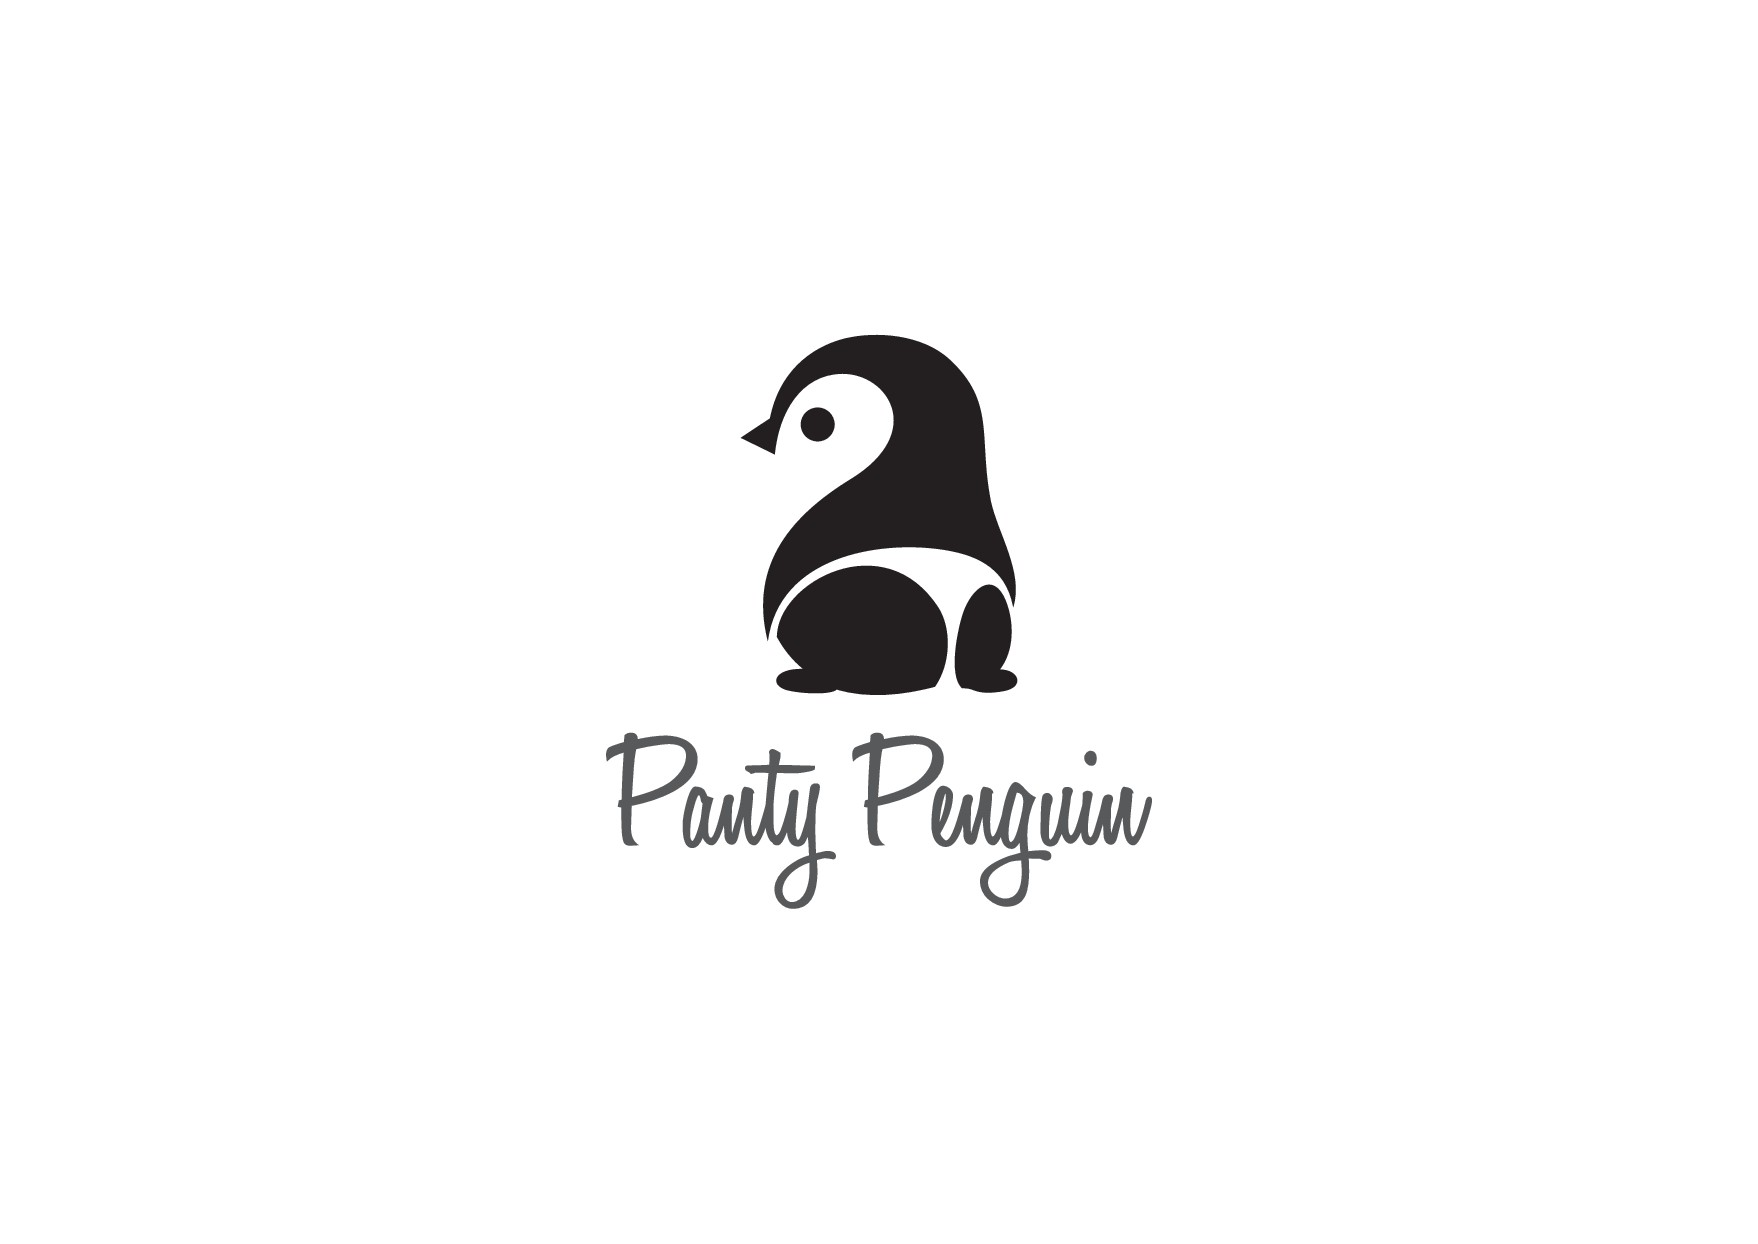 Panties for the people!.  Design a logo for Panty Penguin